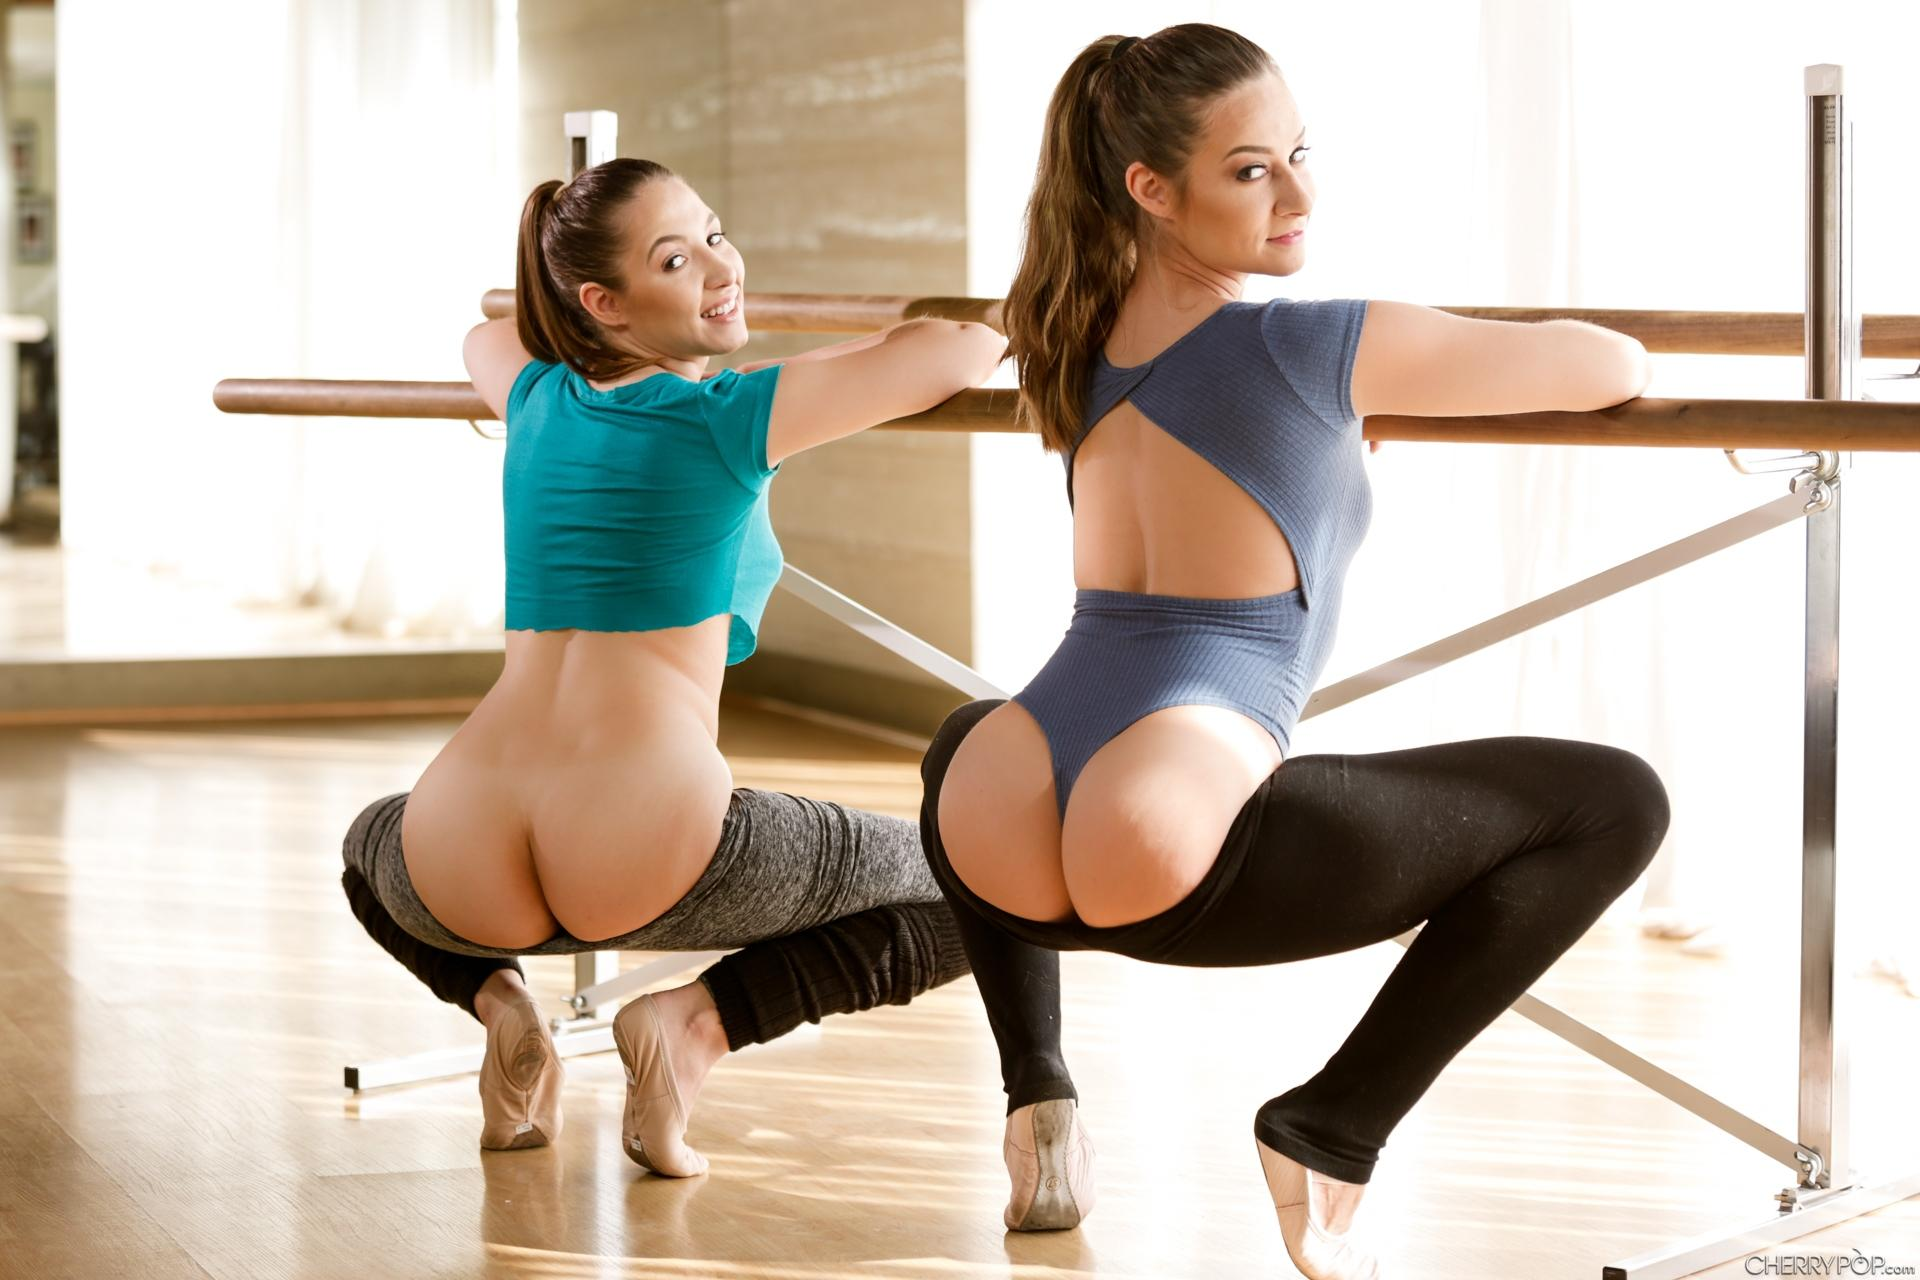 cherrypopping yoga cuties are getting down on a business guy #6